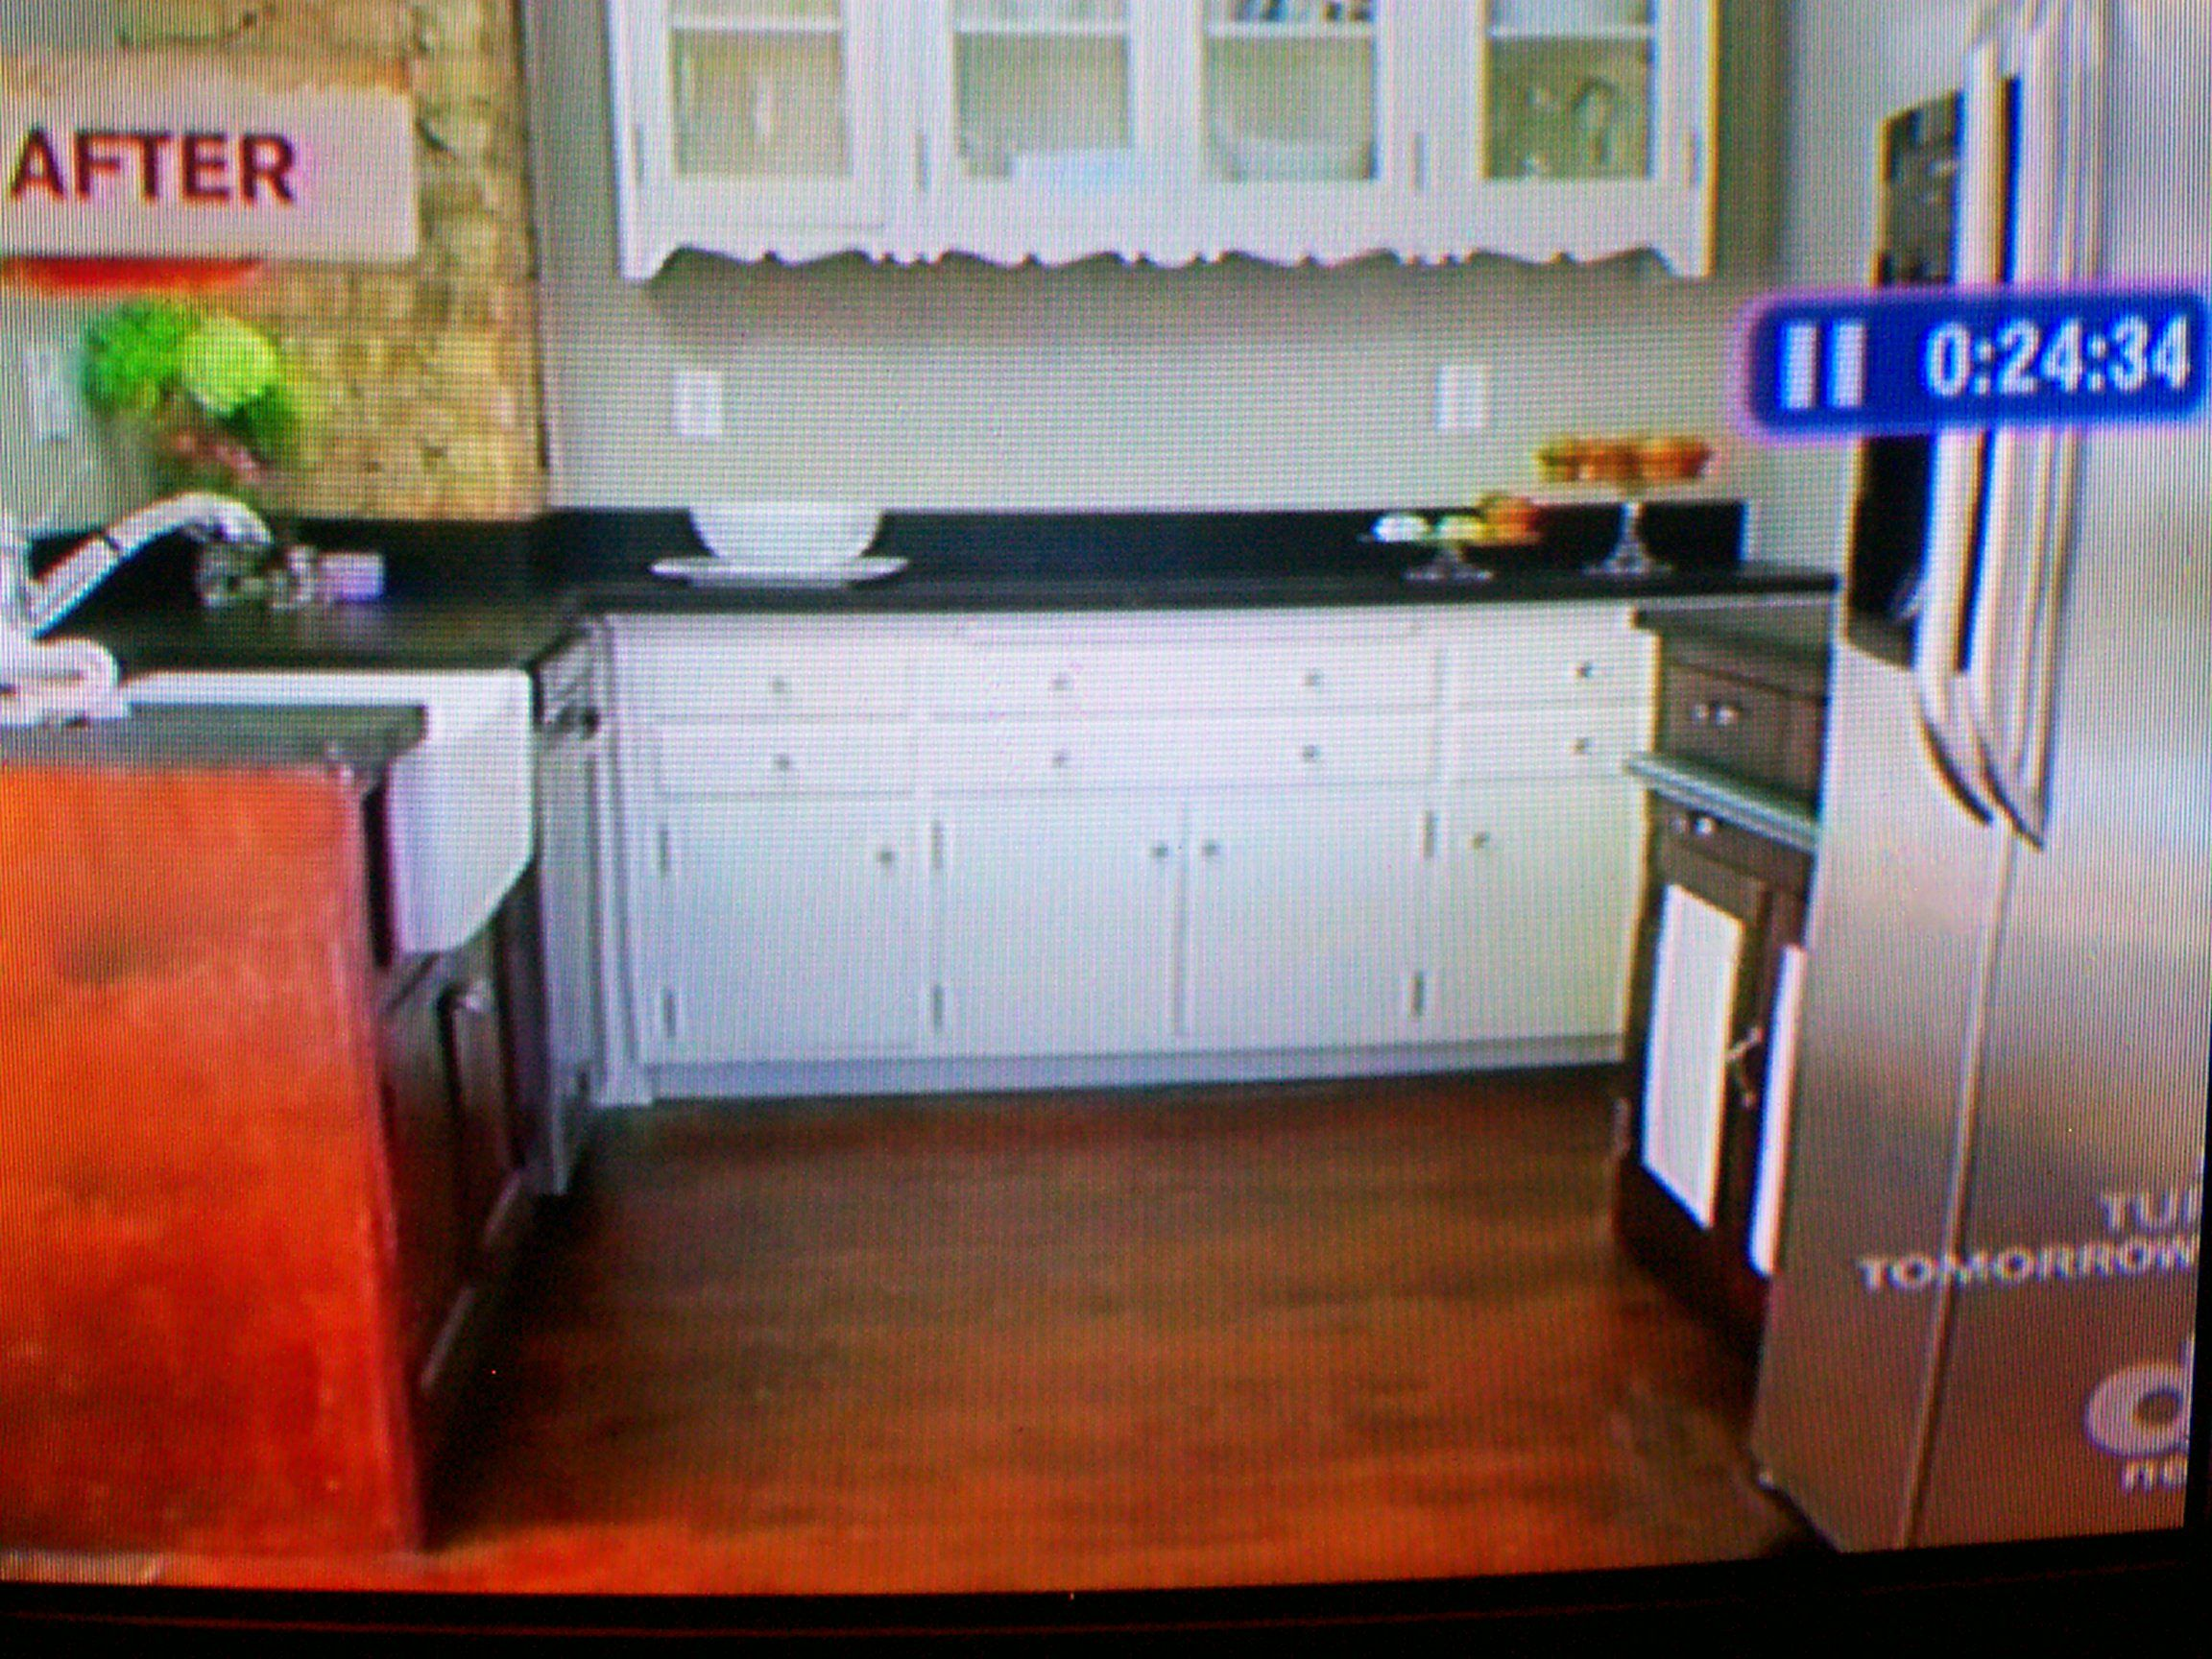 Diy Network After Love The Placement Of The Fridge Kitchen Plan Knock Out The Panty Put The Fridge T With Images Kitchen Plans Diy Cupboards Kitchen Pantry Cabinets